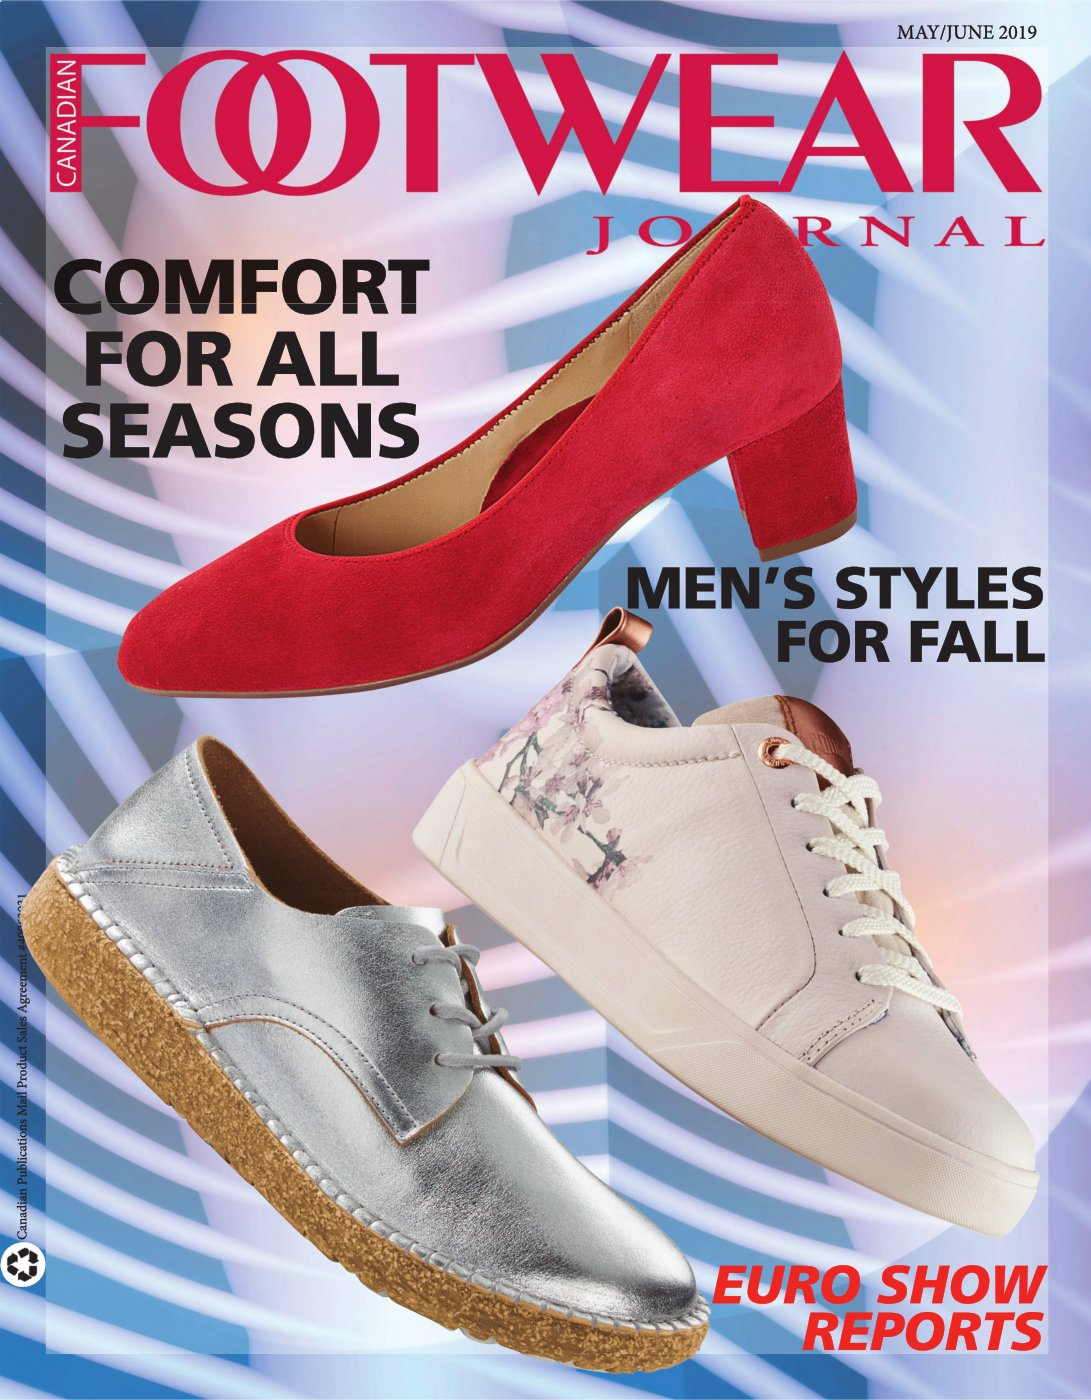 Canadian Footwear Journal May/June 2019 (McLeish Communications Inc)